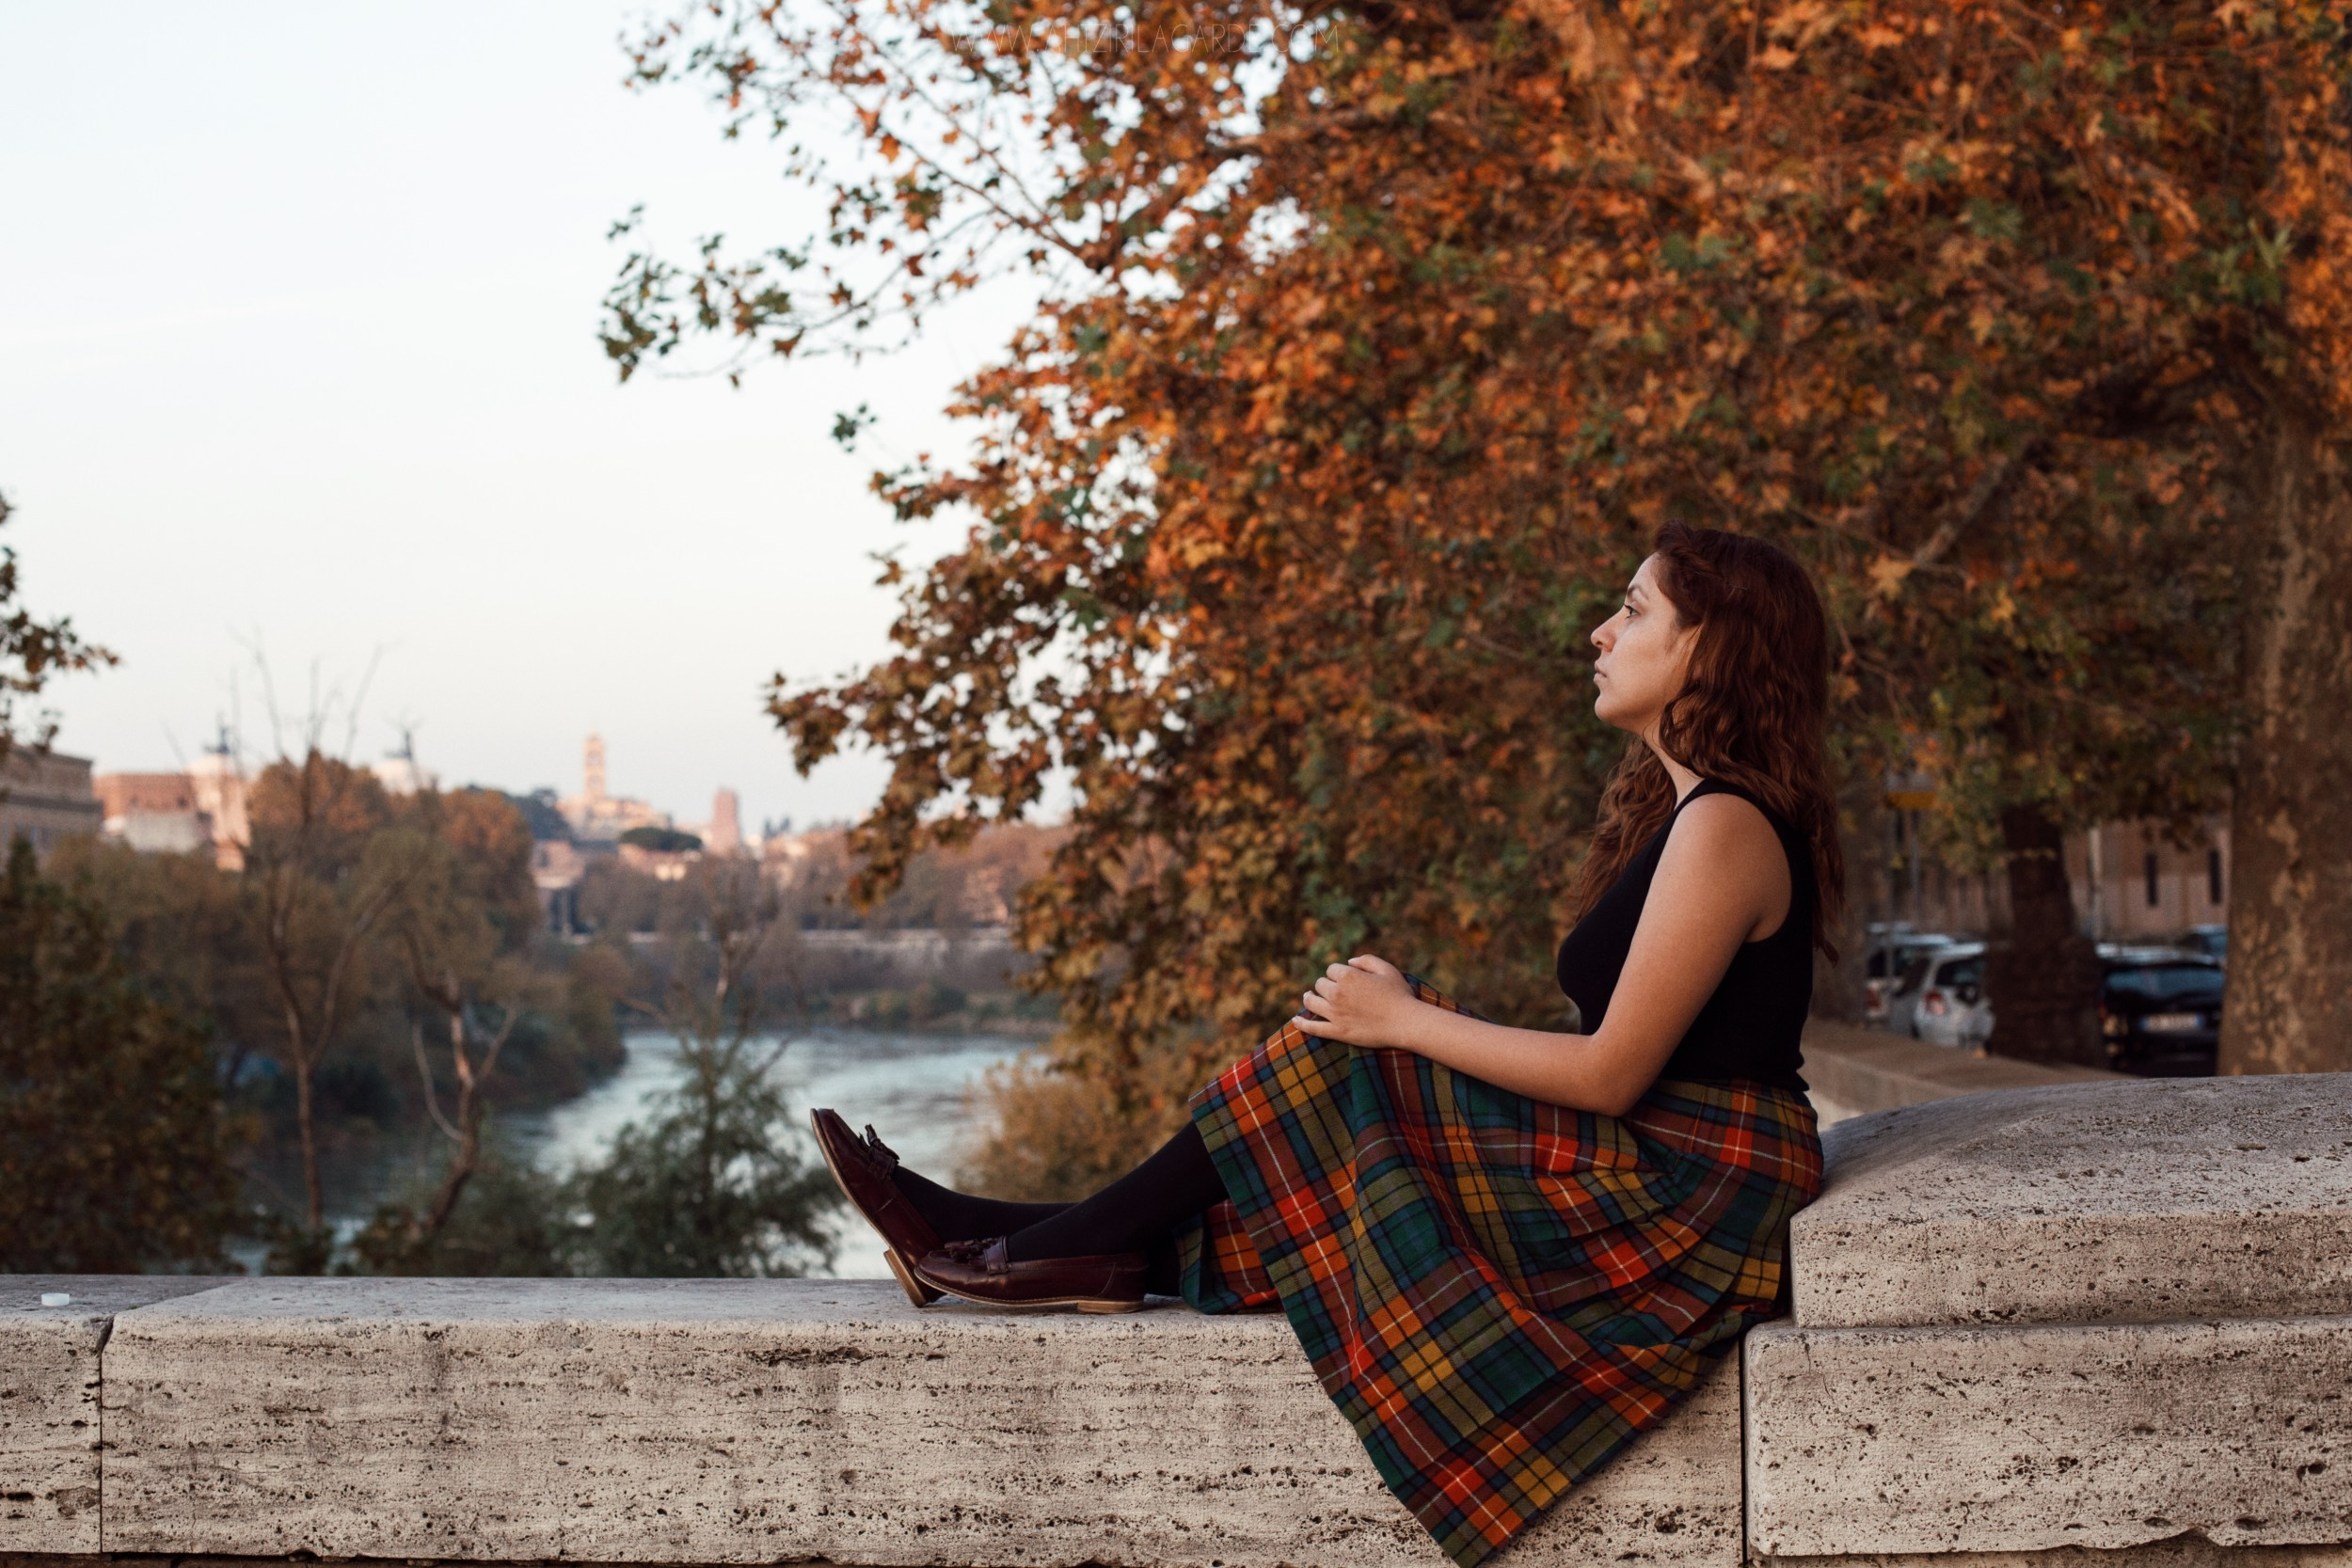 Autumn November shot with girl in kilt